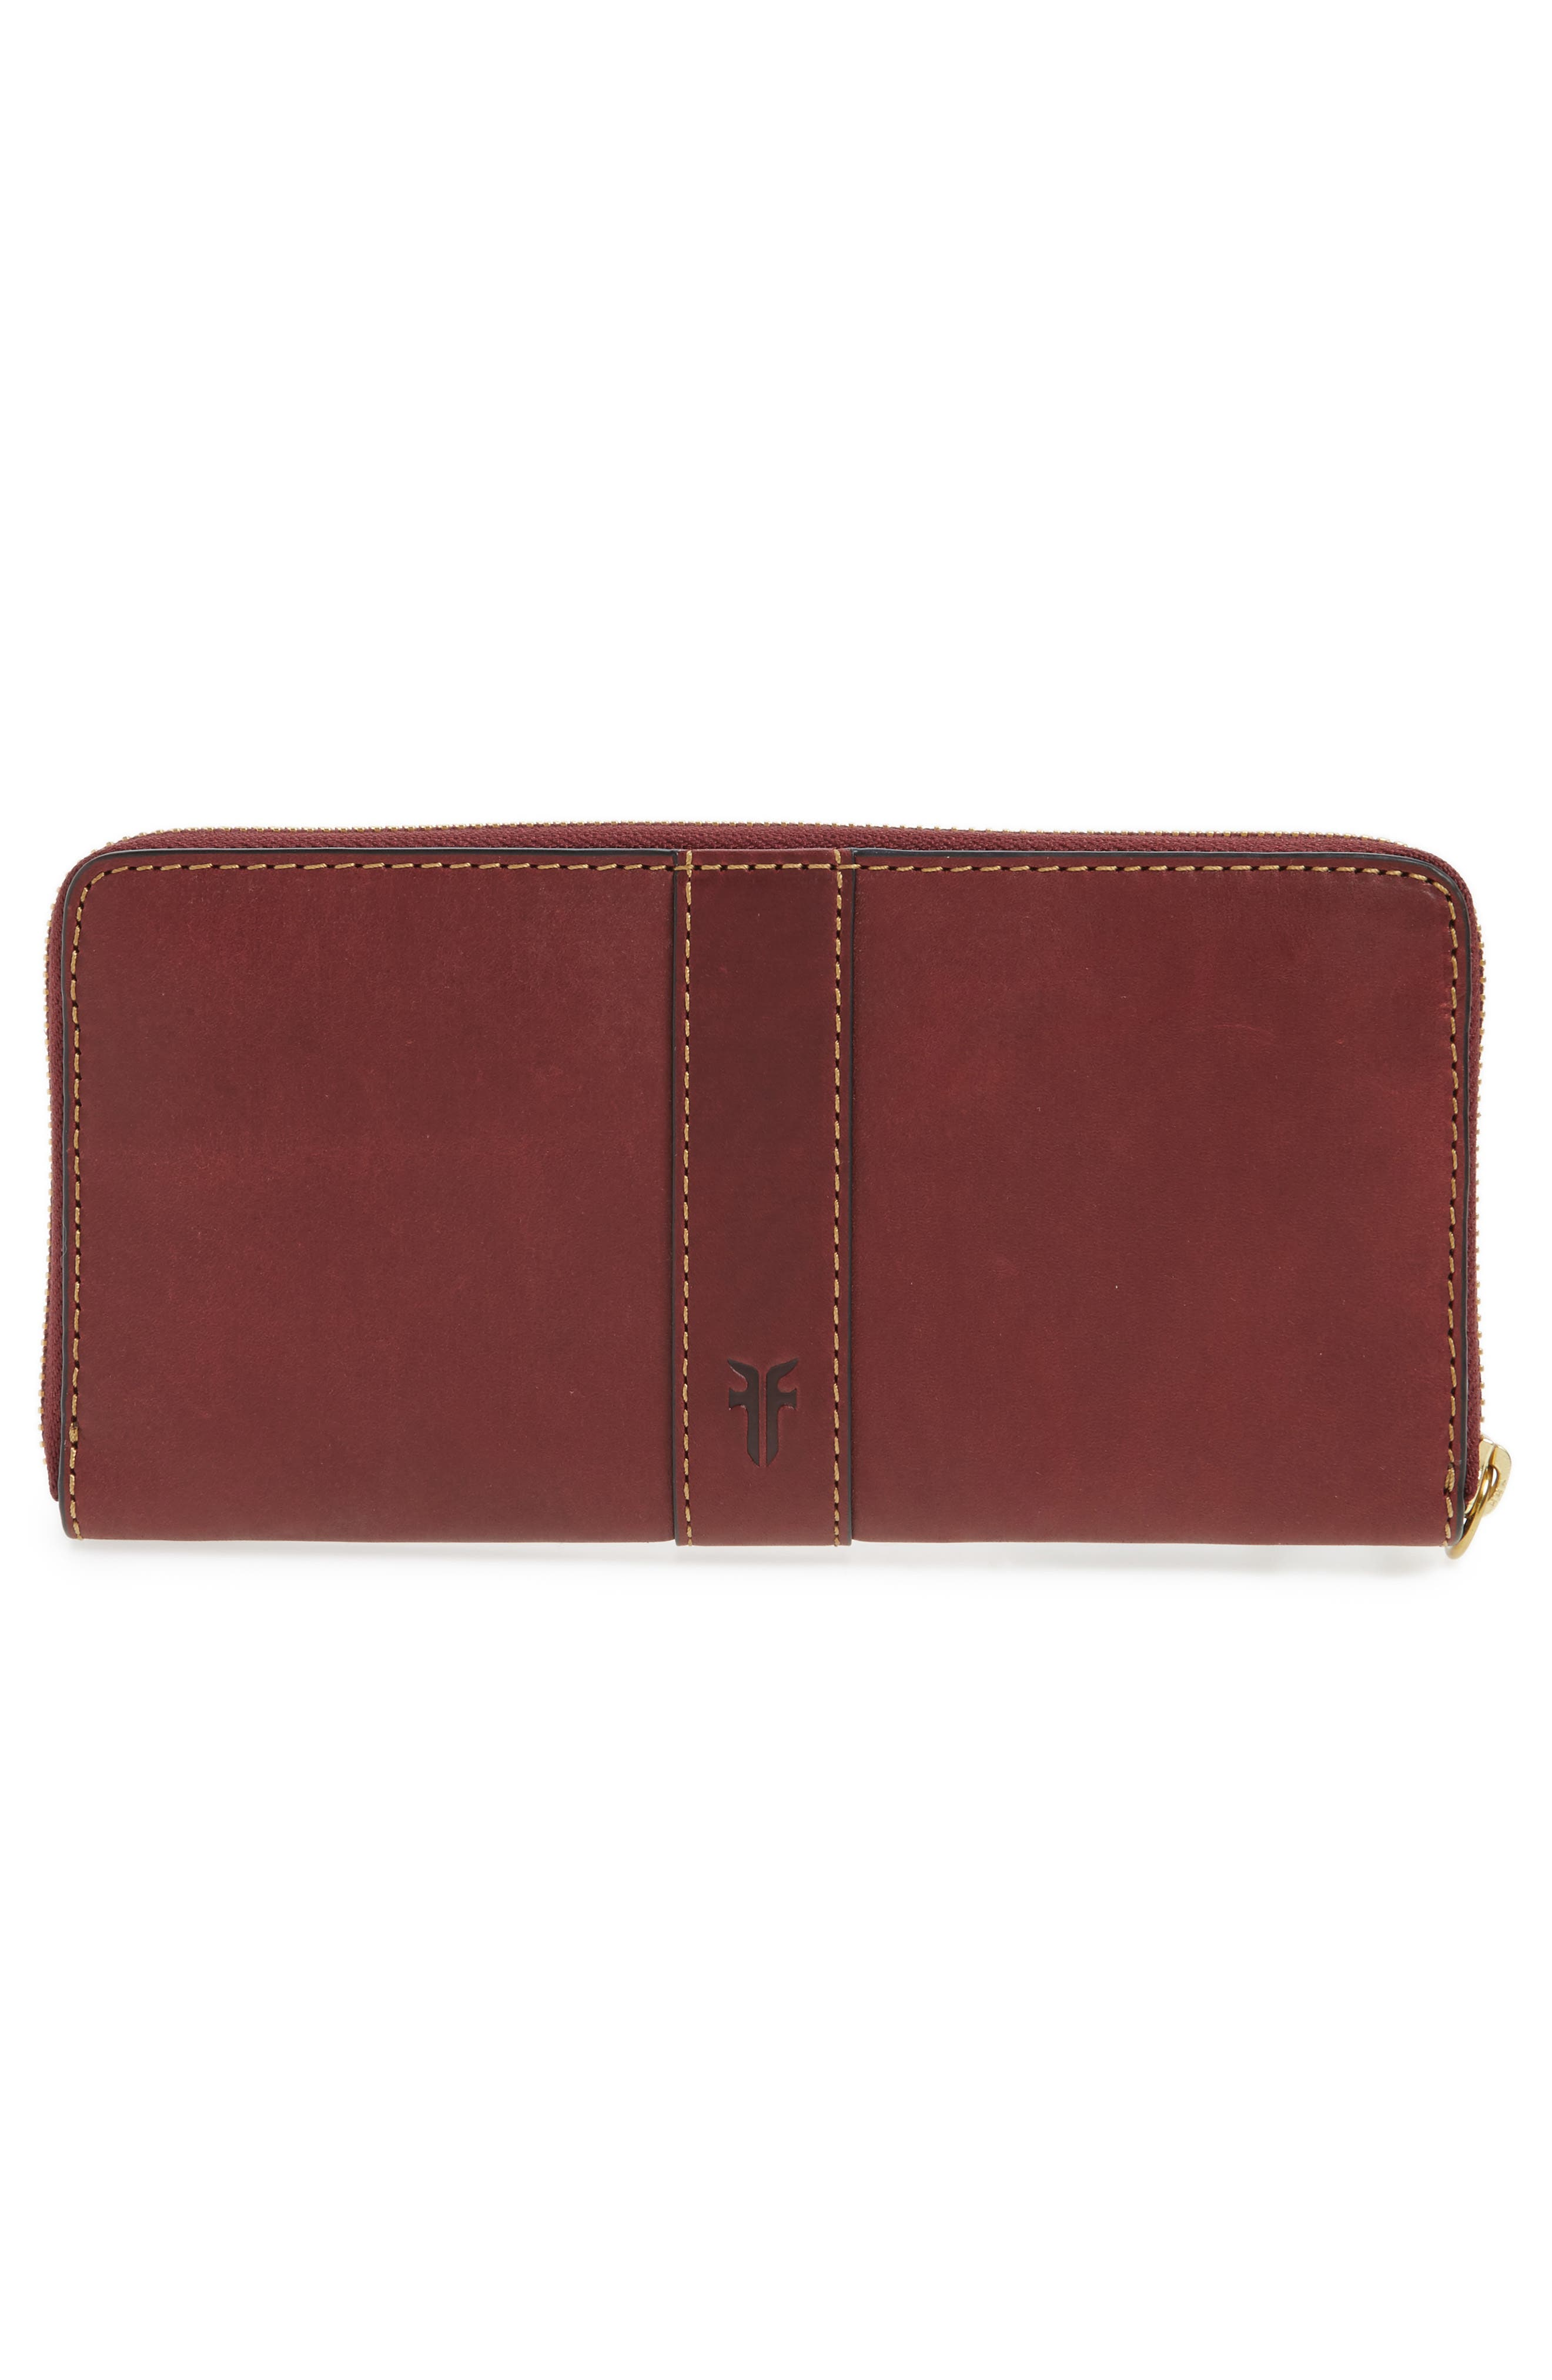 Ilana Harness Leather Zip Wallet,                             Alternate thumbnail 4, color,                             Wine